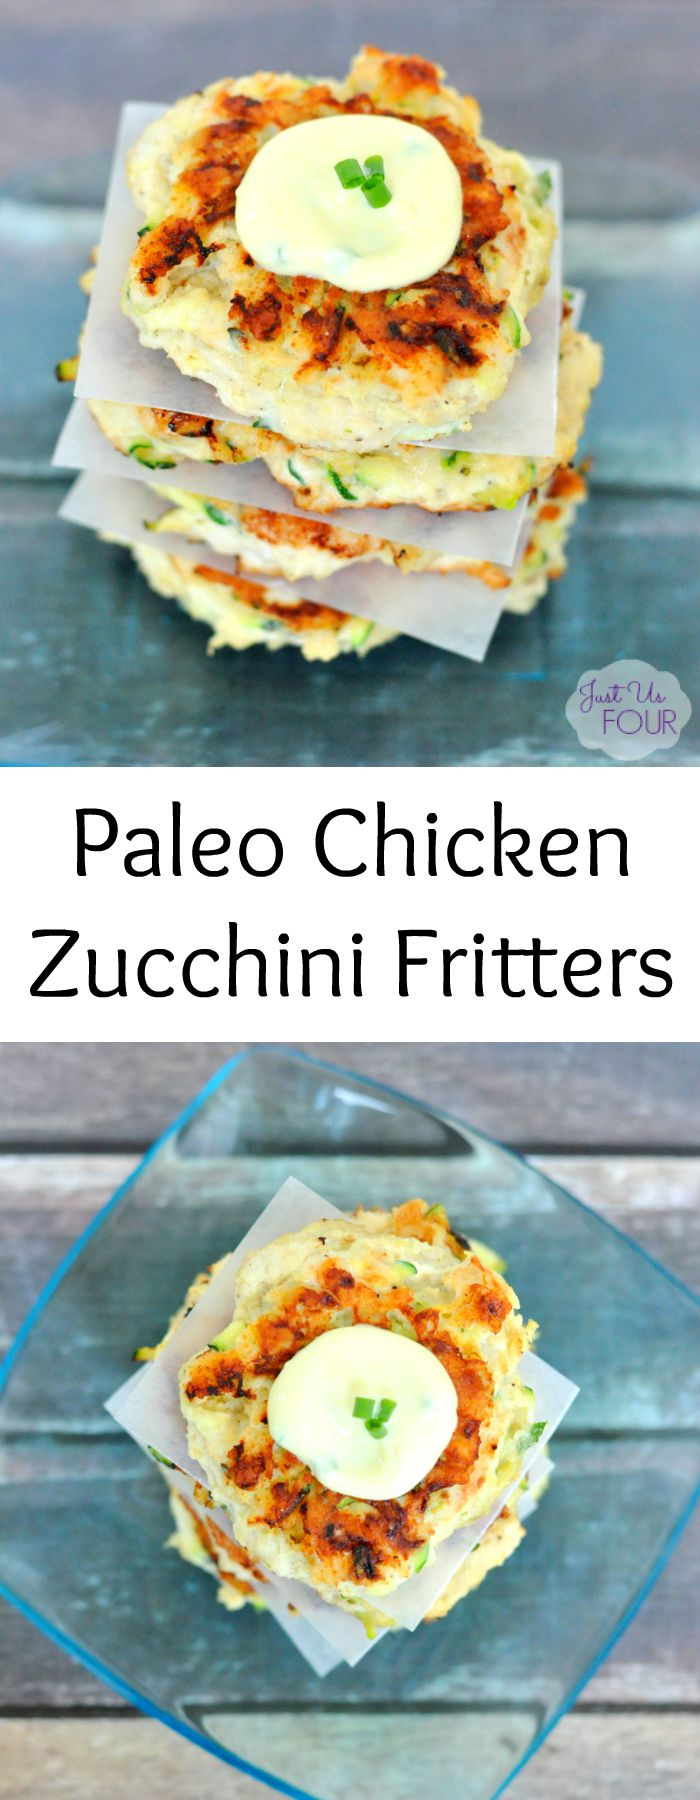 Chicken Zucchini Fritters are amazing and are ready in under 30 minutes. The best part is they are totally Paleo and Whole30 complaint.